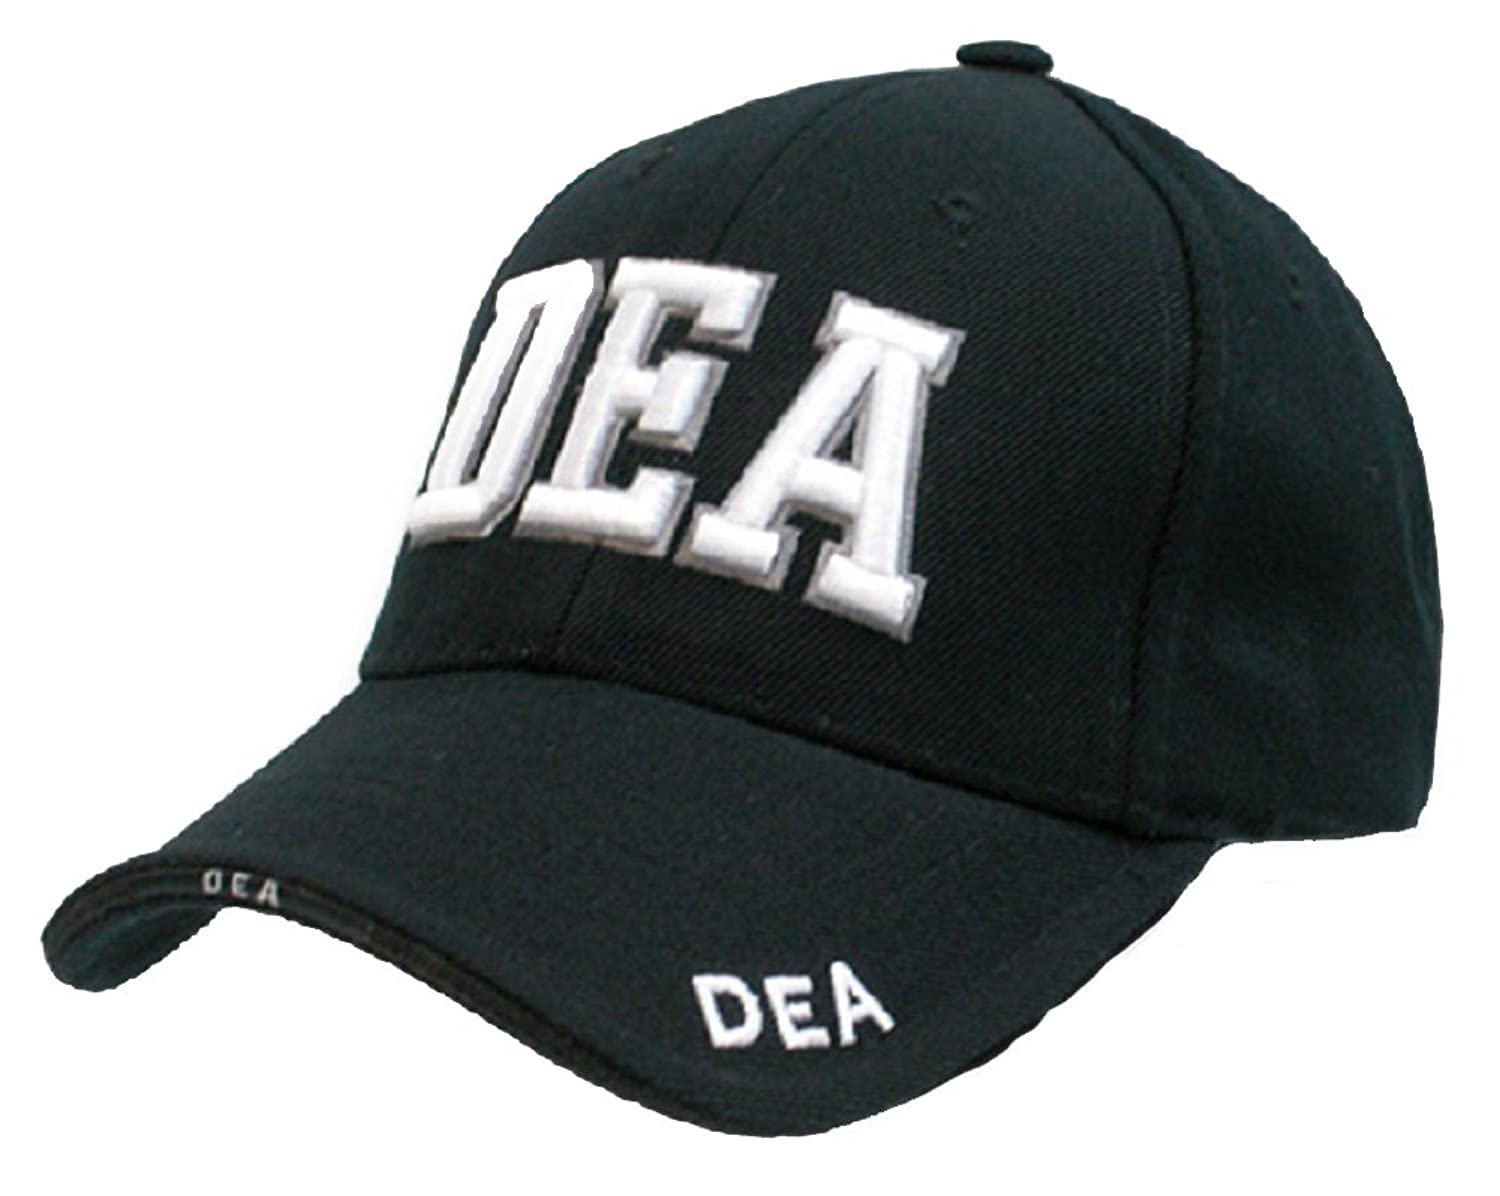 DEA - Law Enforcement - Baseball Cap / Hat Adjustable BLACK with 3D Embroidery unisex men women m embroidery snapback hats hip hop adjustable baseball cap hat